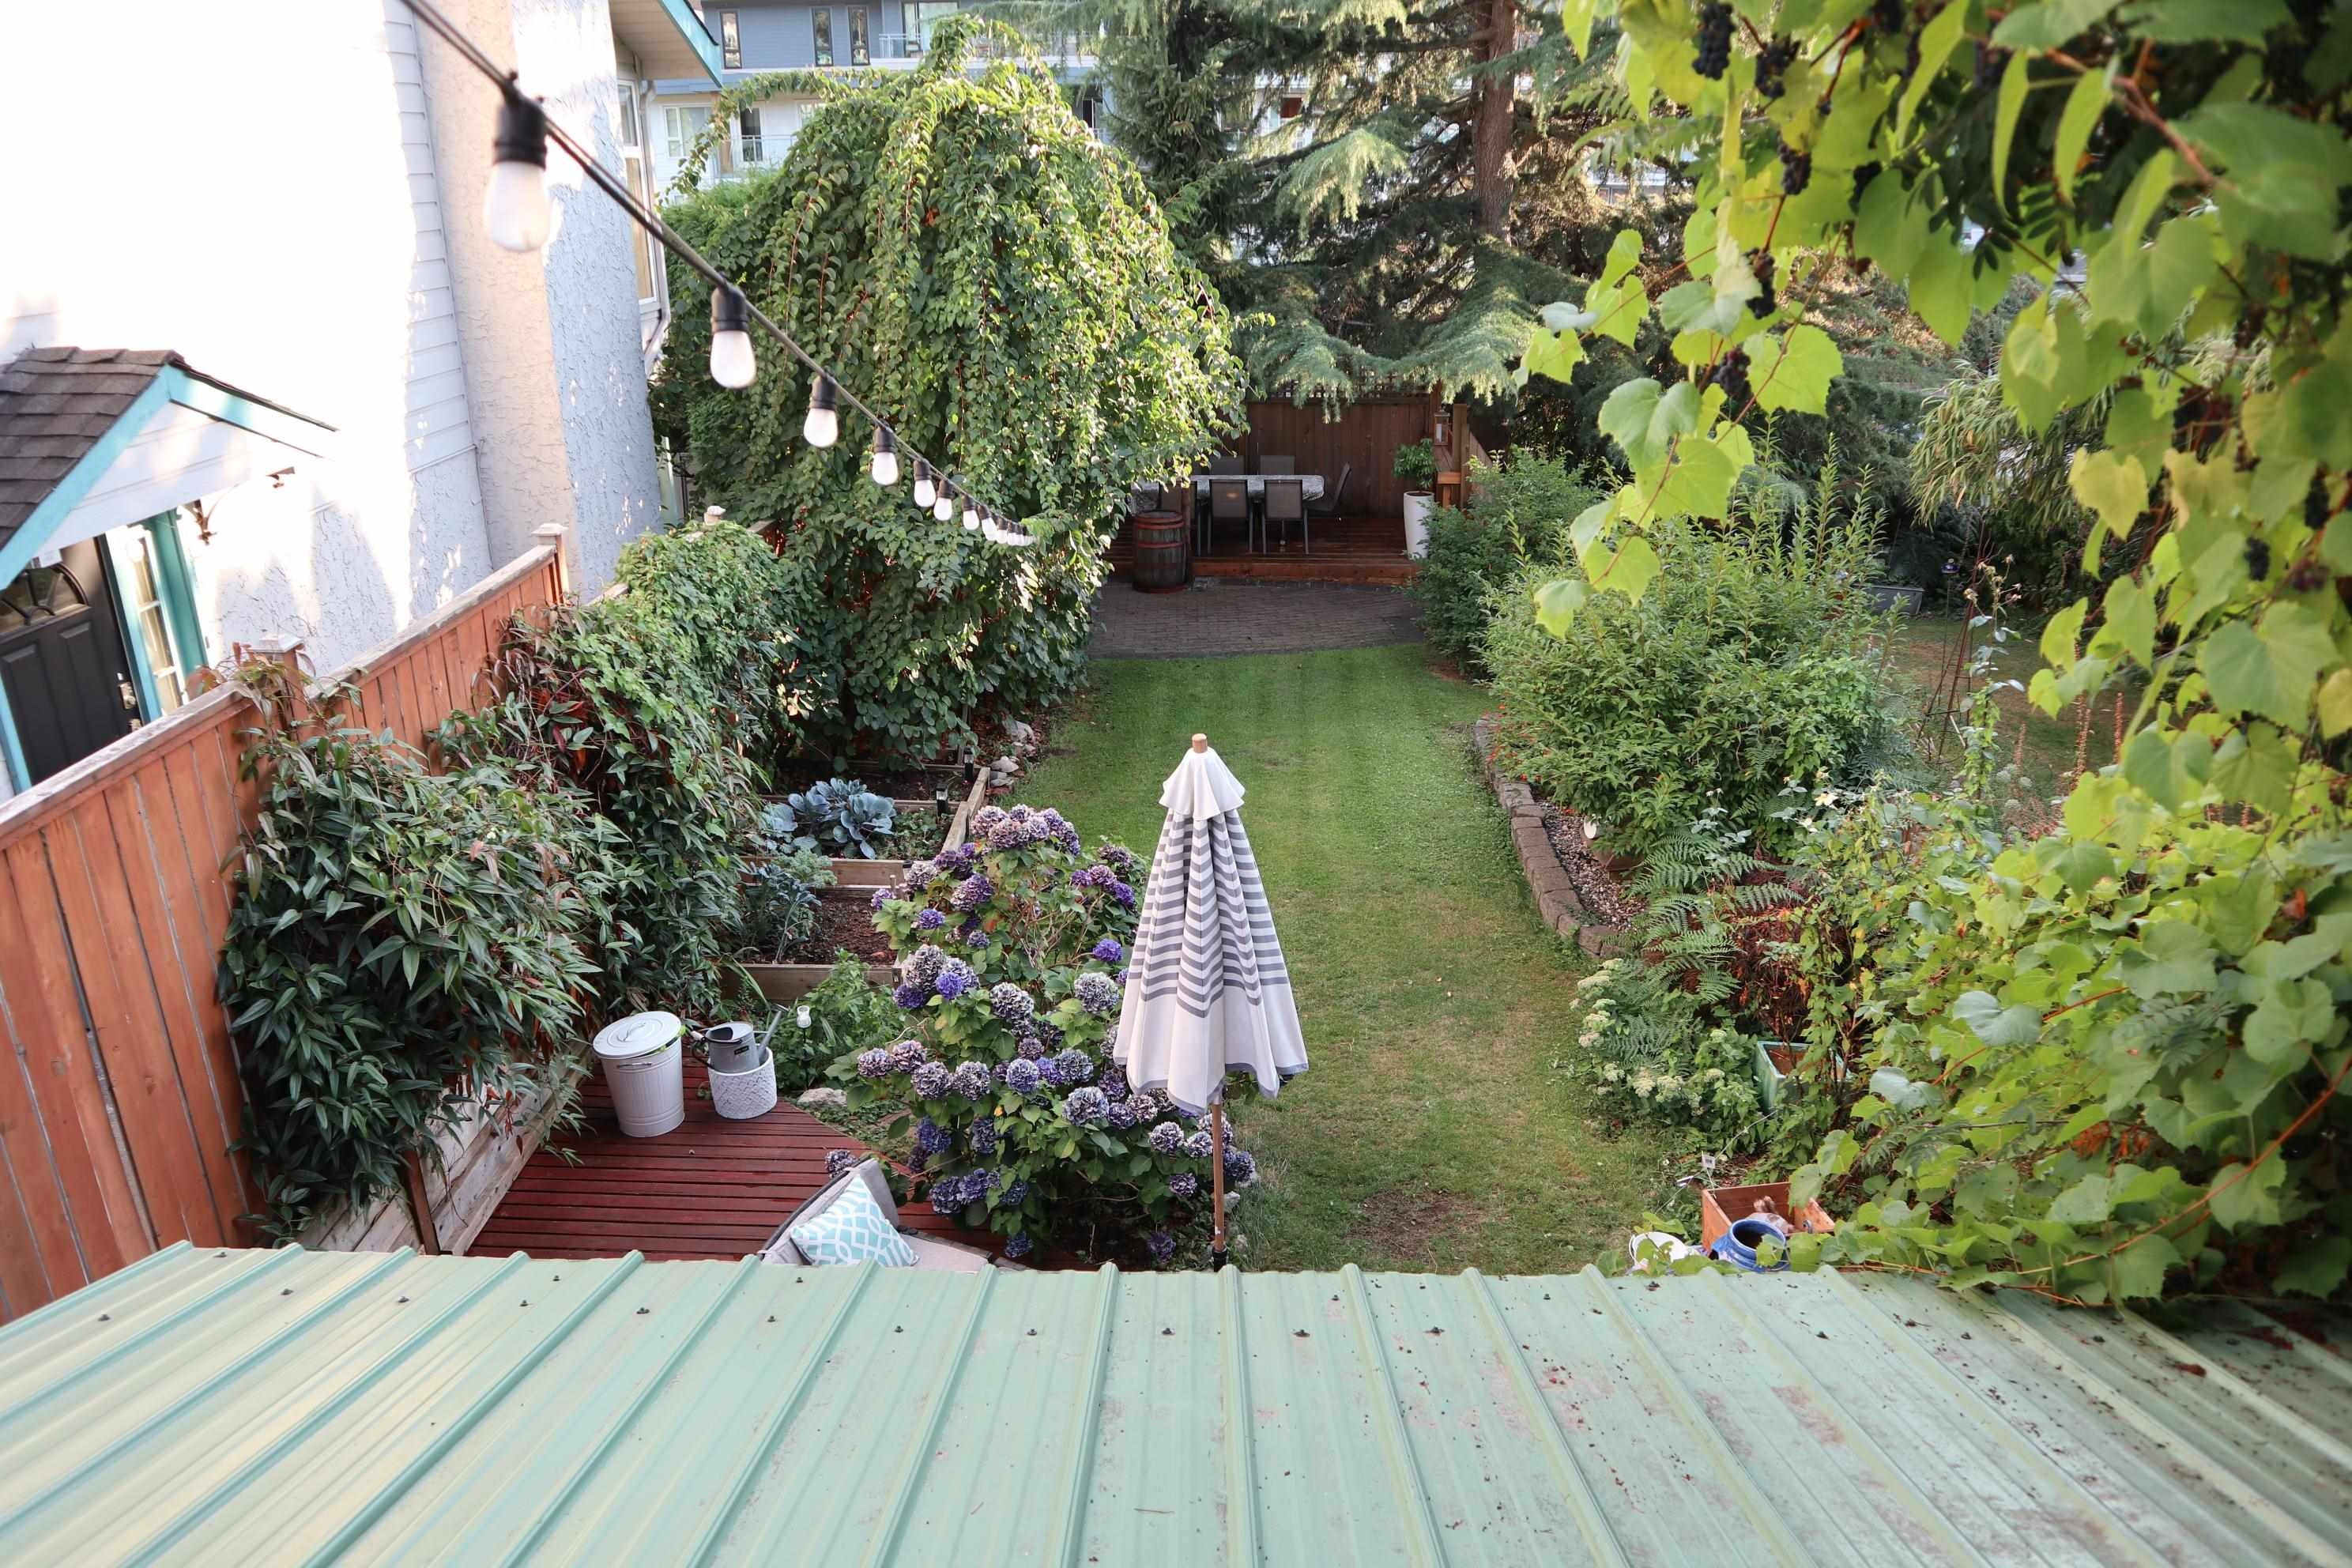 224 E 3RD STREET - Lower Lonsdale House/Single Family for sale, 2 Bedrooms (R2622022) - #2